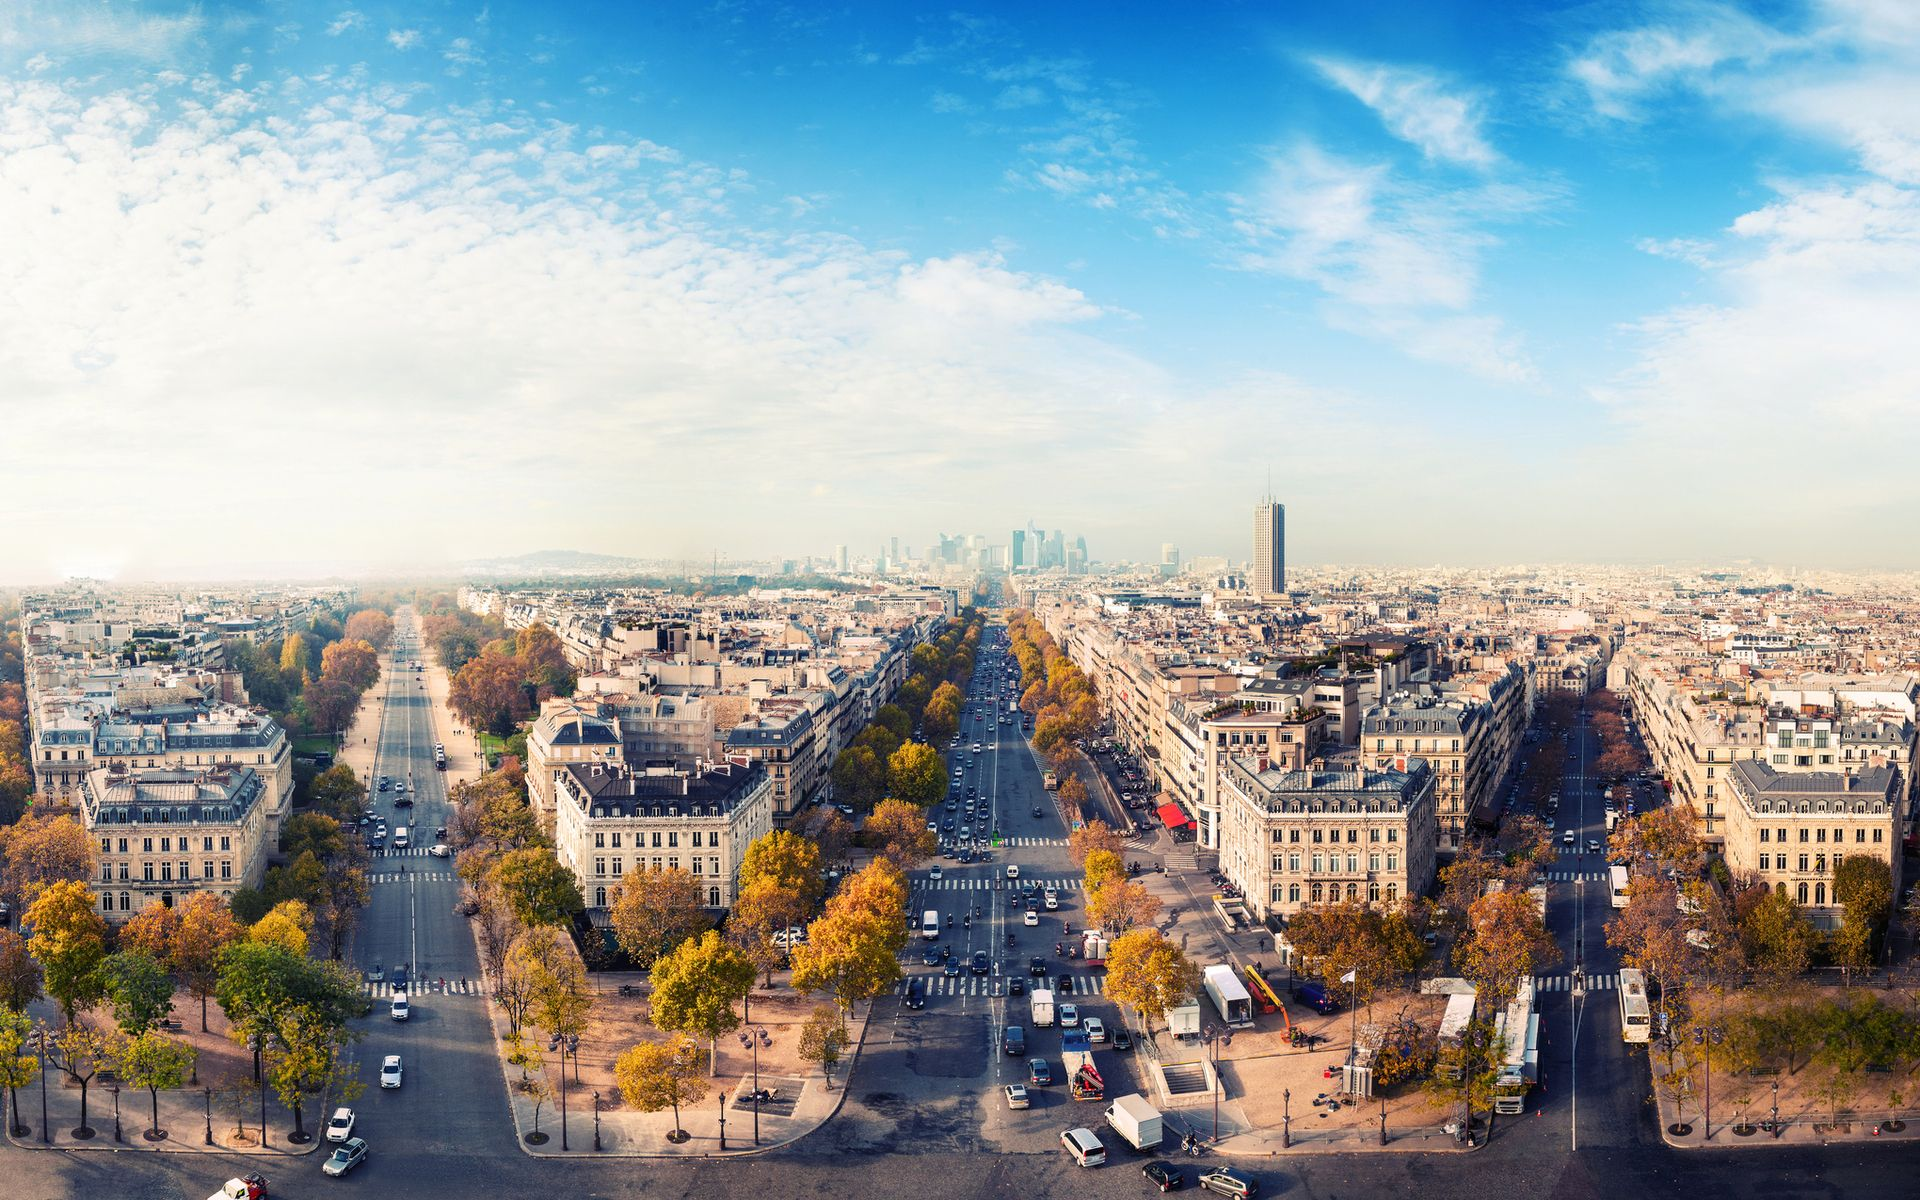 Paris Wallpapers,Backgrounds,Pictures,Photos,Laptop